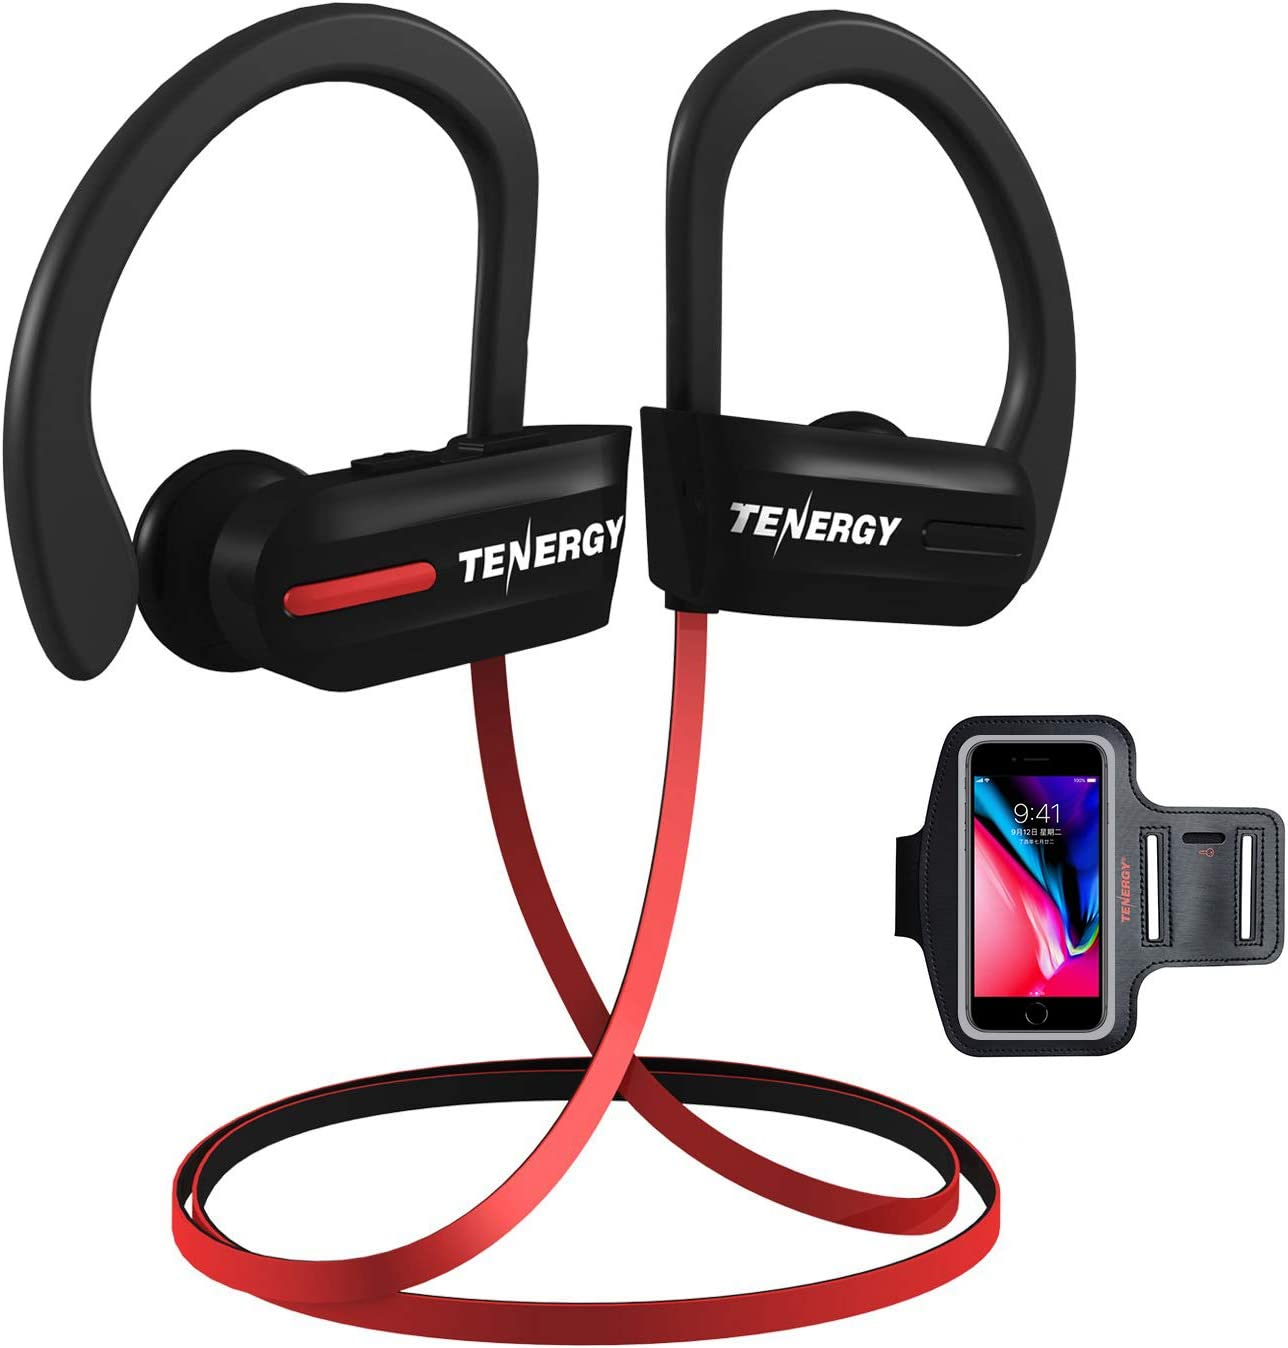 Amazon Com Tenergy T20 Wireless Bluetooth Headphones Ipx7 Sweatproof Running Earphones Noise Canceling 8 Hour Working Time In Ear Bluetooth V4 1 Stereo Earbuds With Mic Bonus Sport Armband Electronics